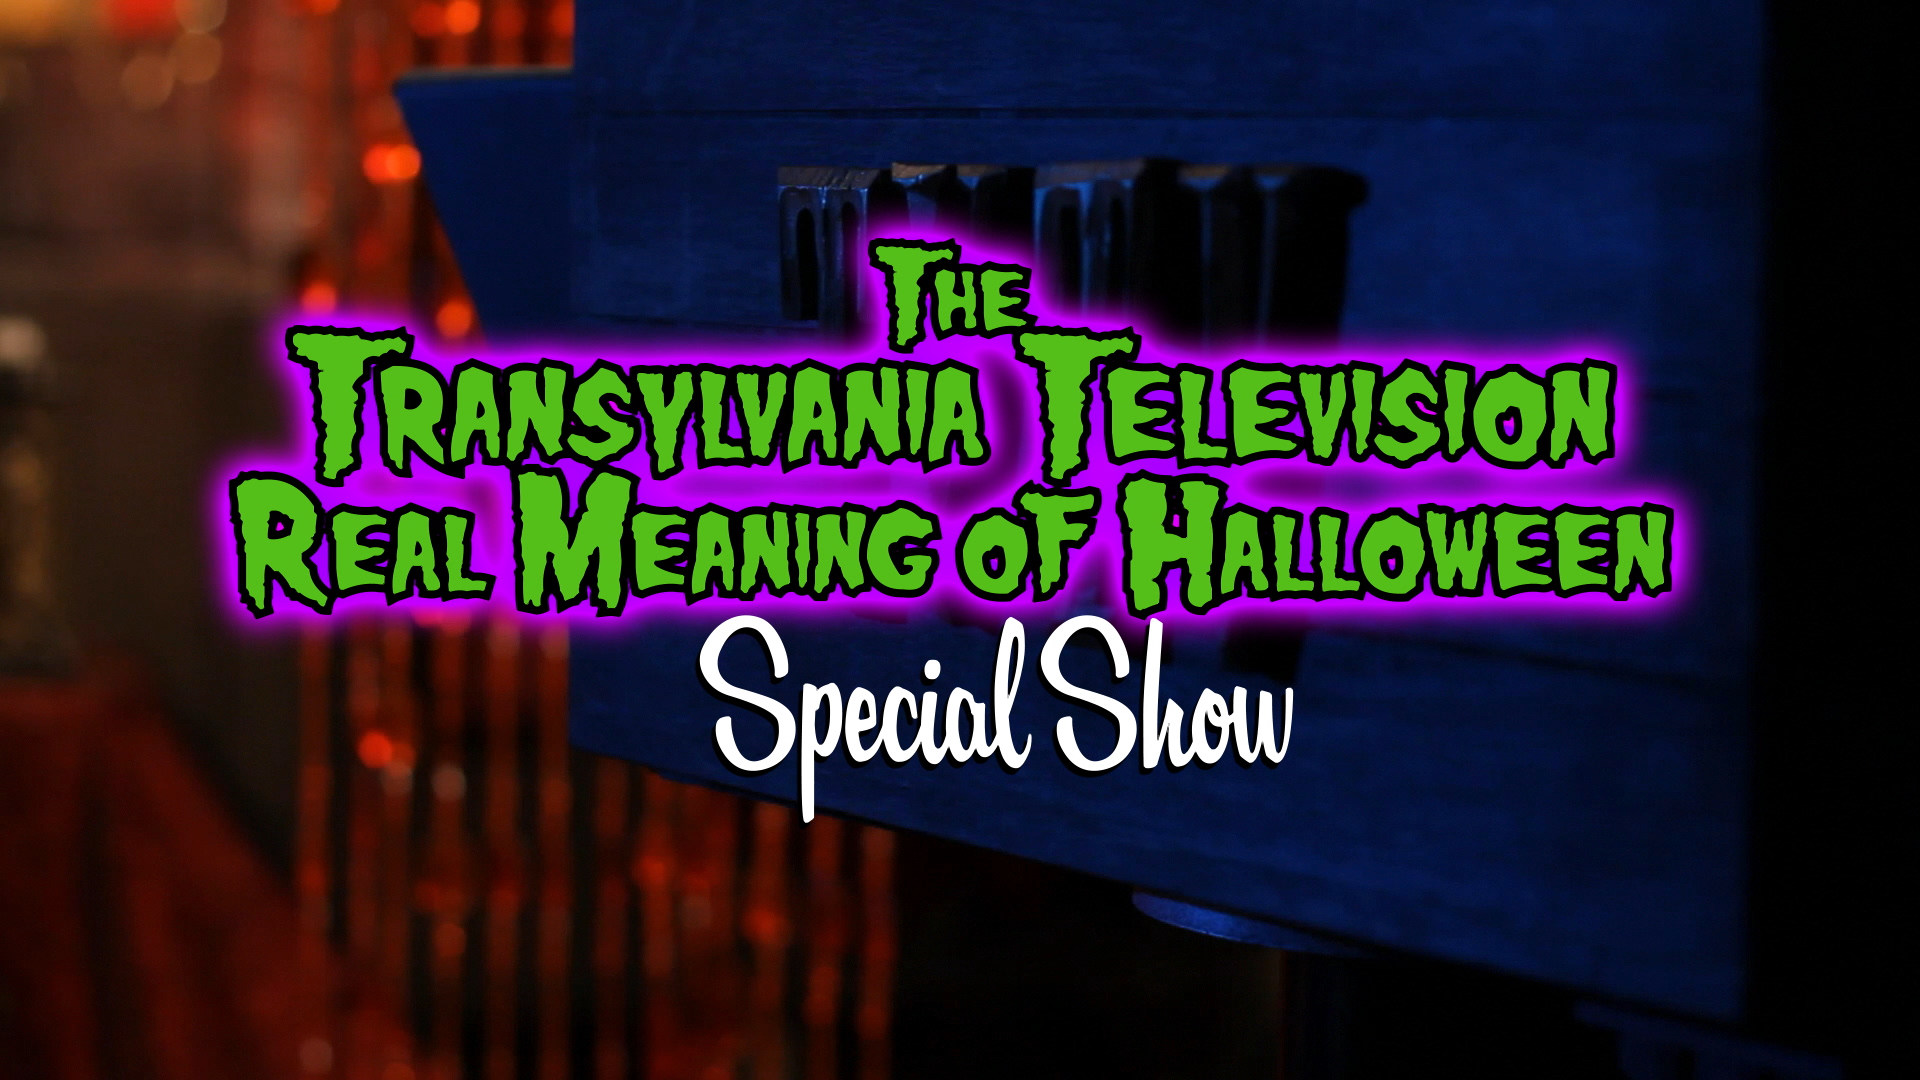 Transylvania TV Real Meaning of Halloween Special Show